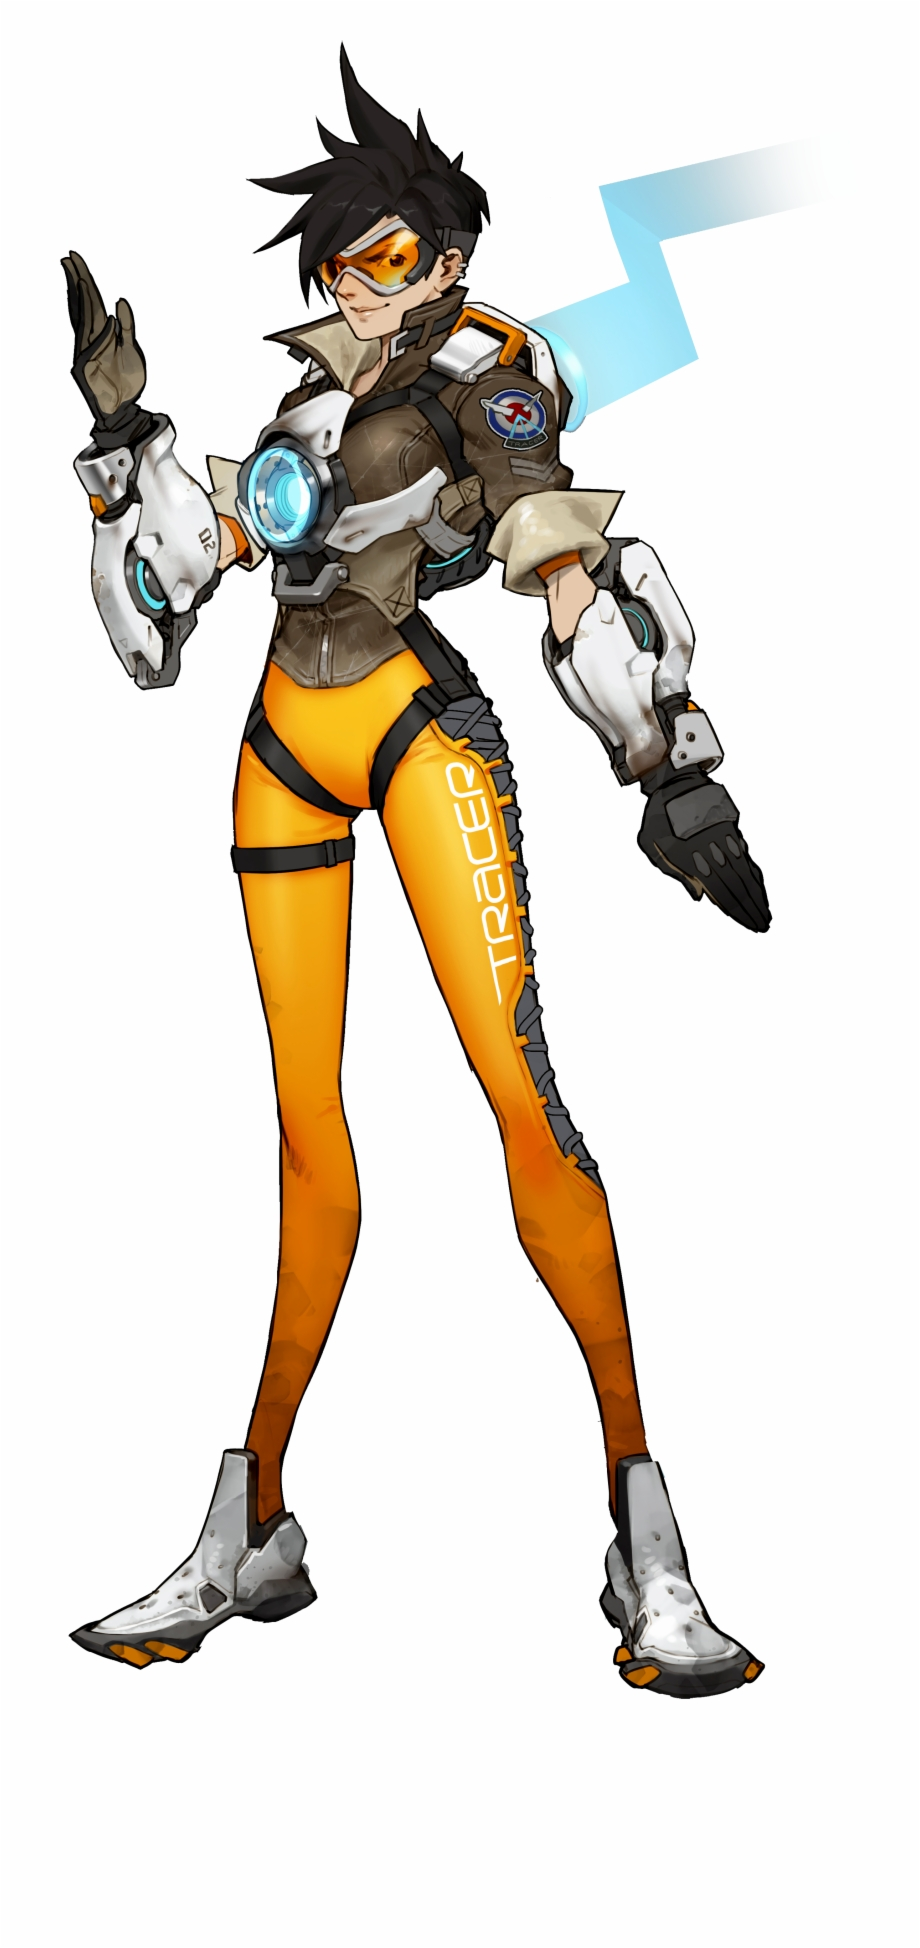 Tracer overwatch clipart clip free Img] - Tracer From Overwatch Free PNG Images & Clipart ... clip free